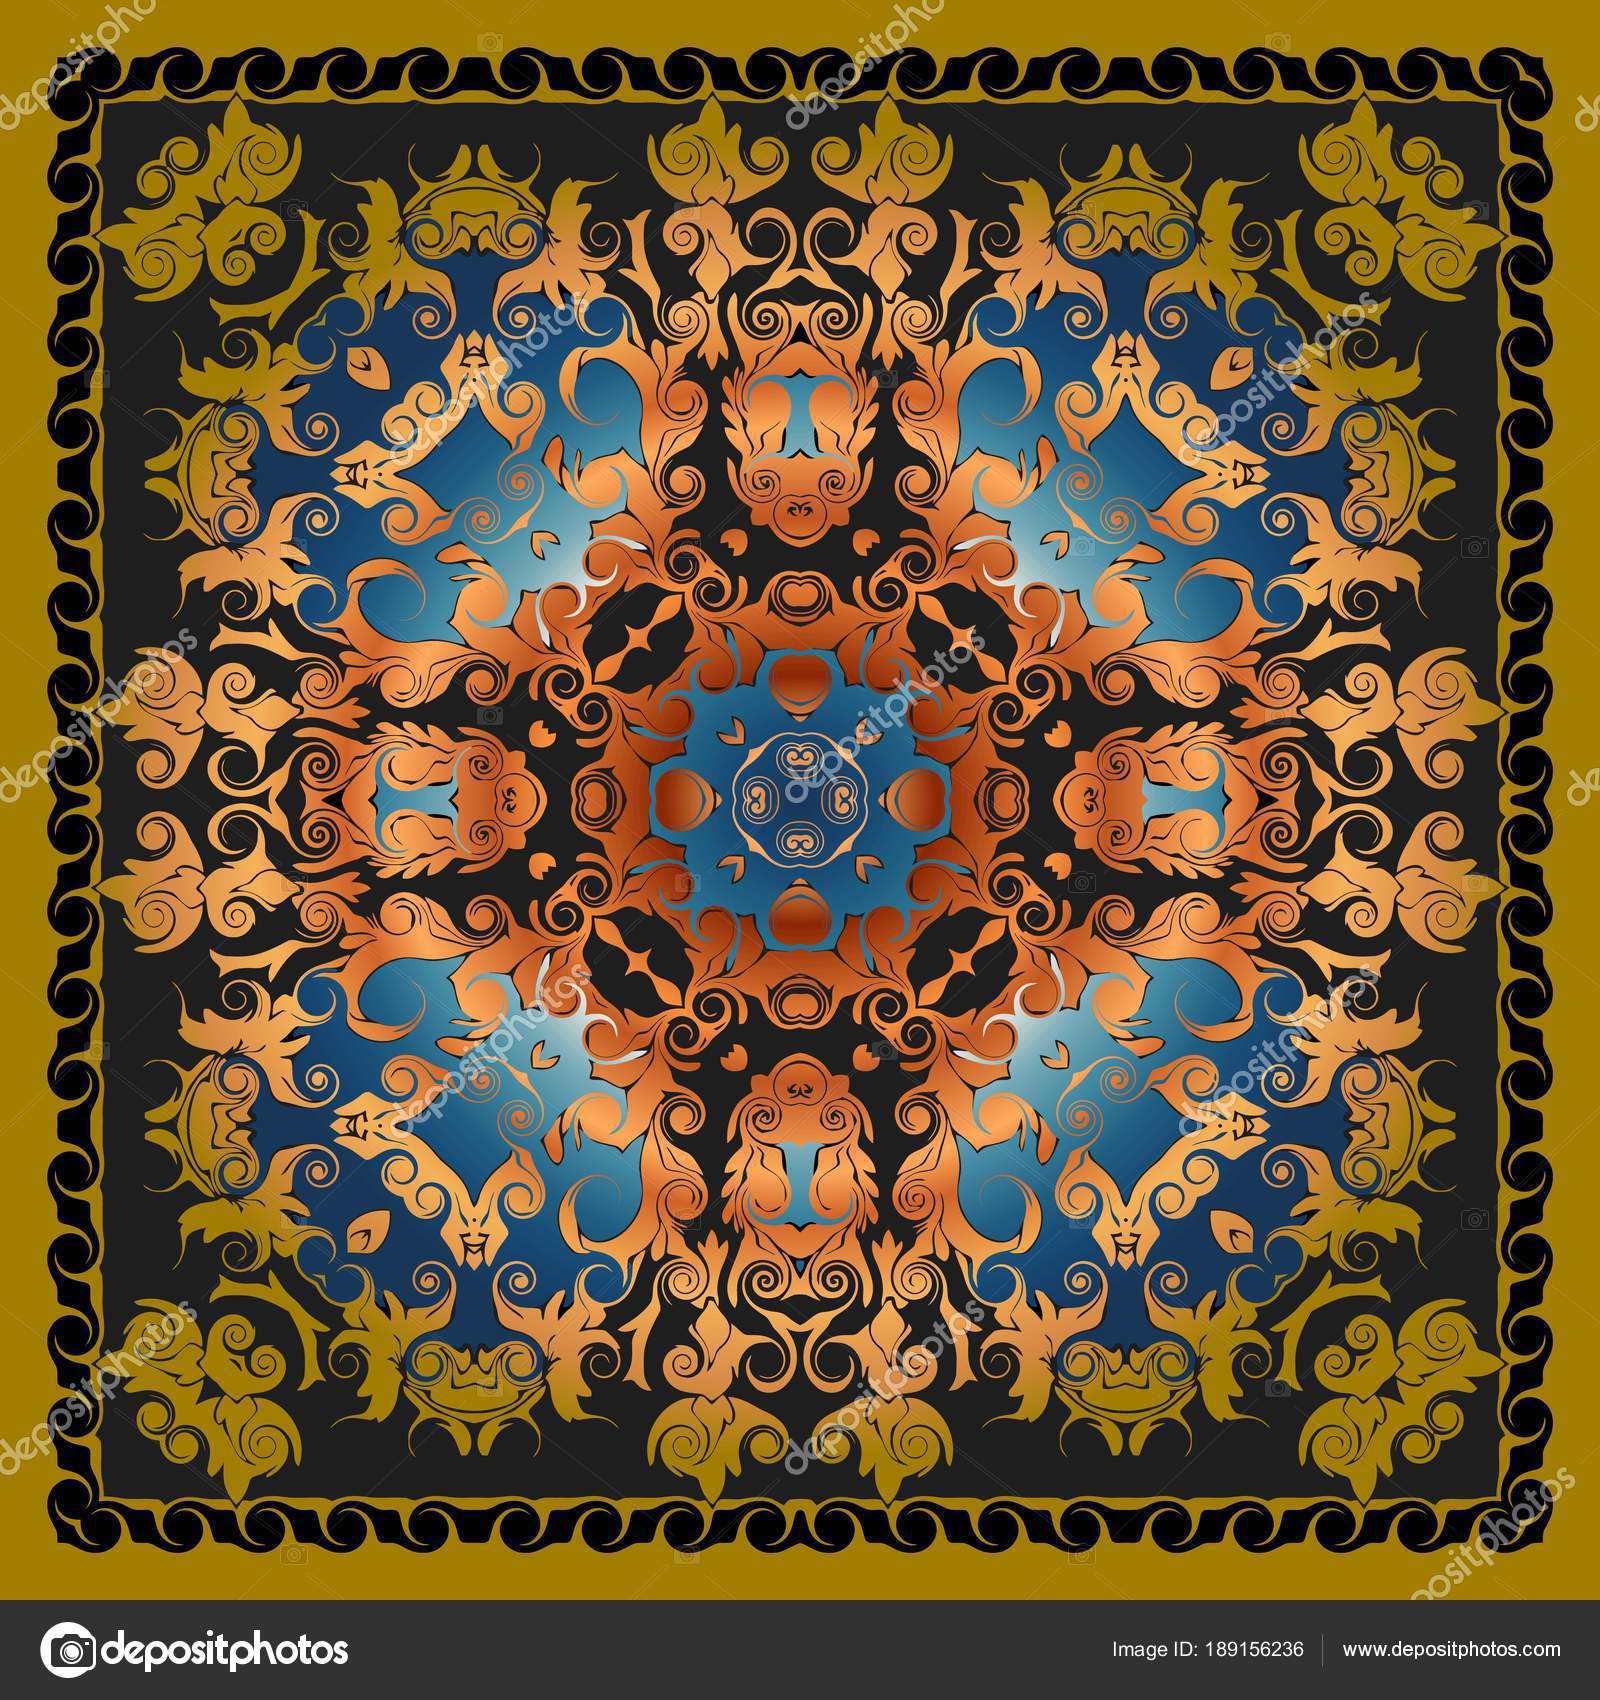 Decorative elements vector color pattern lace mandala on a dark background